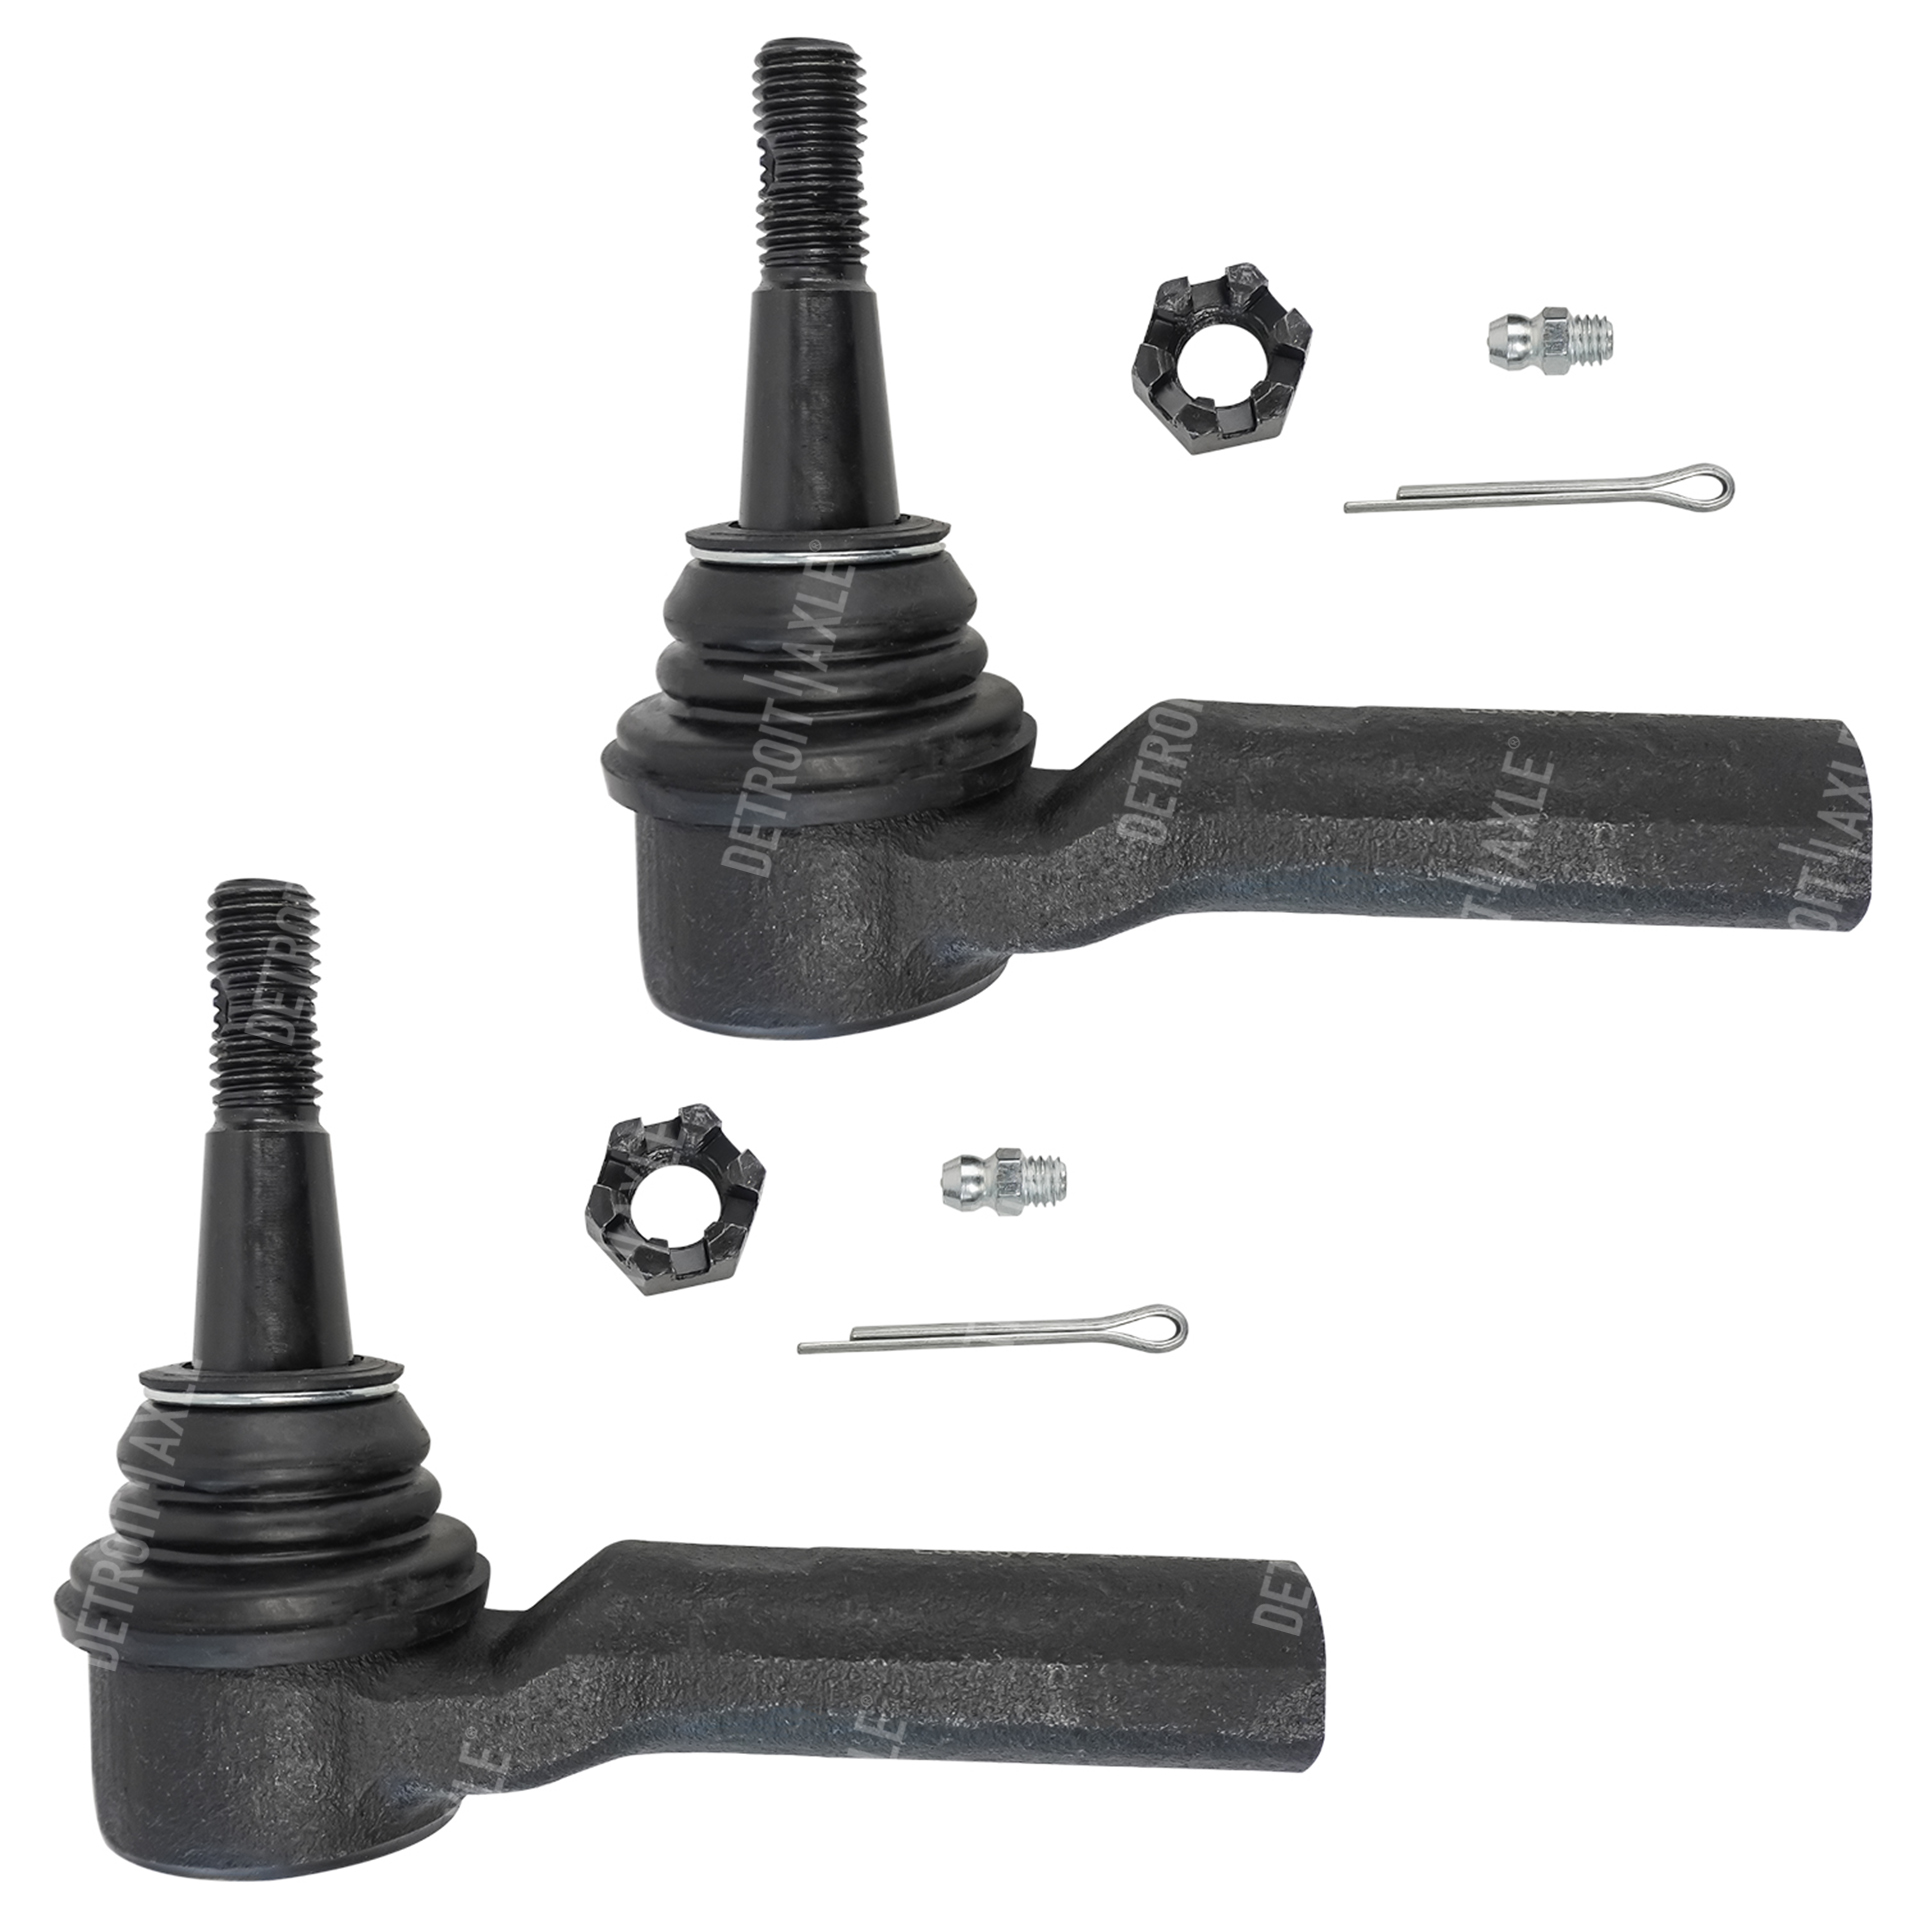 Pair (2) Front Steering Outer Tie Rod Ends Driver Side and Passenger Side for 2010-15 Chevy Camaro